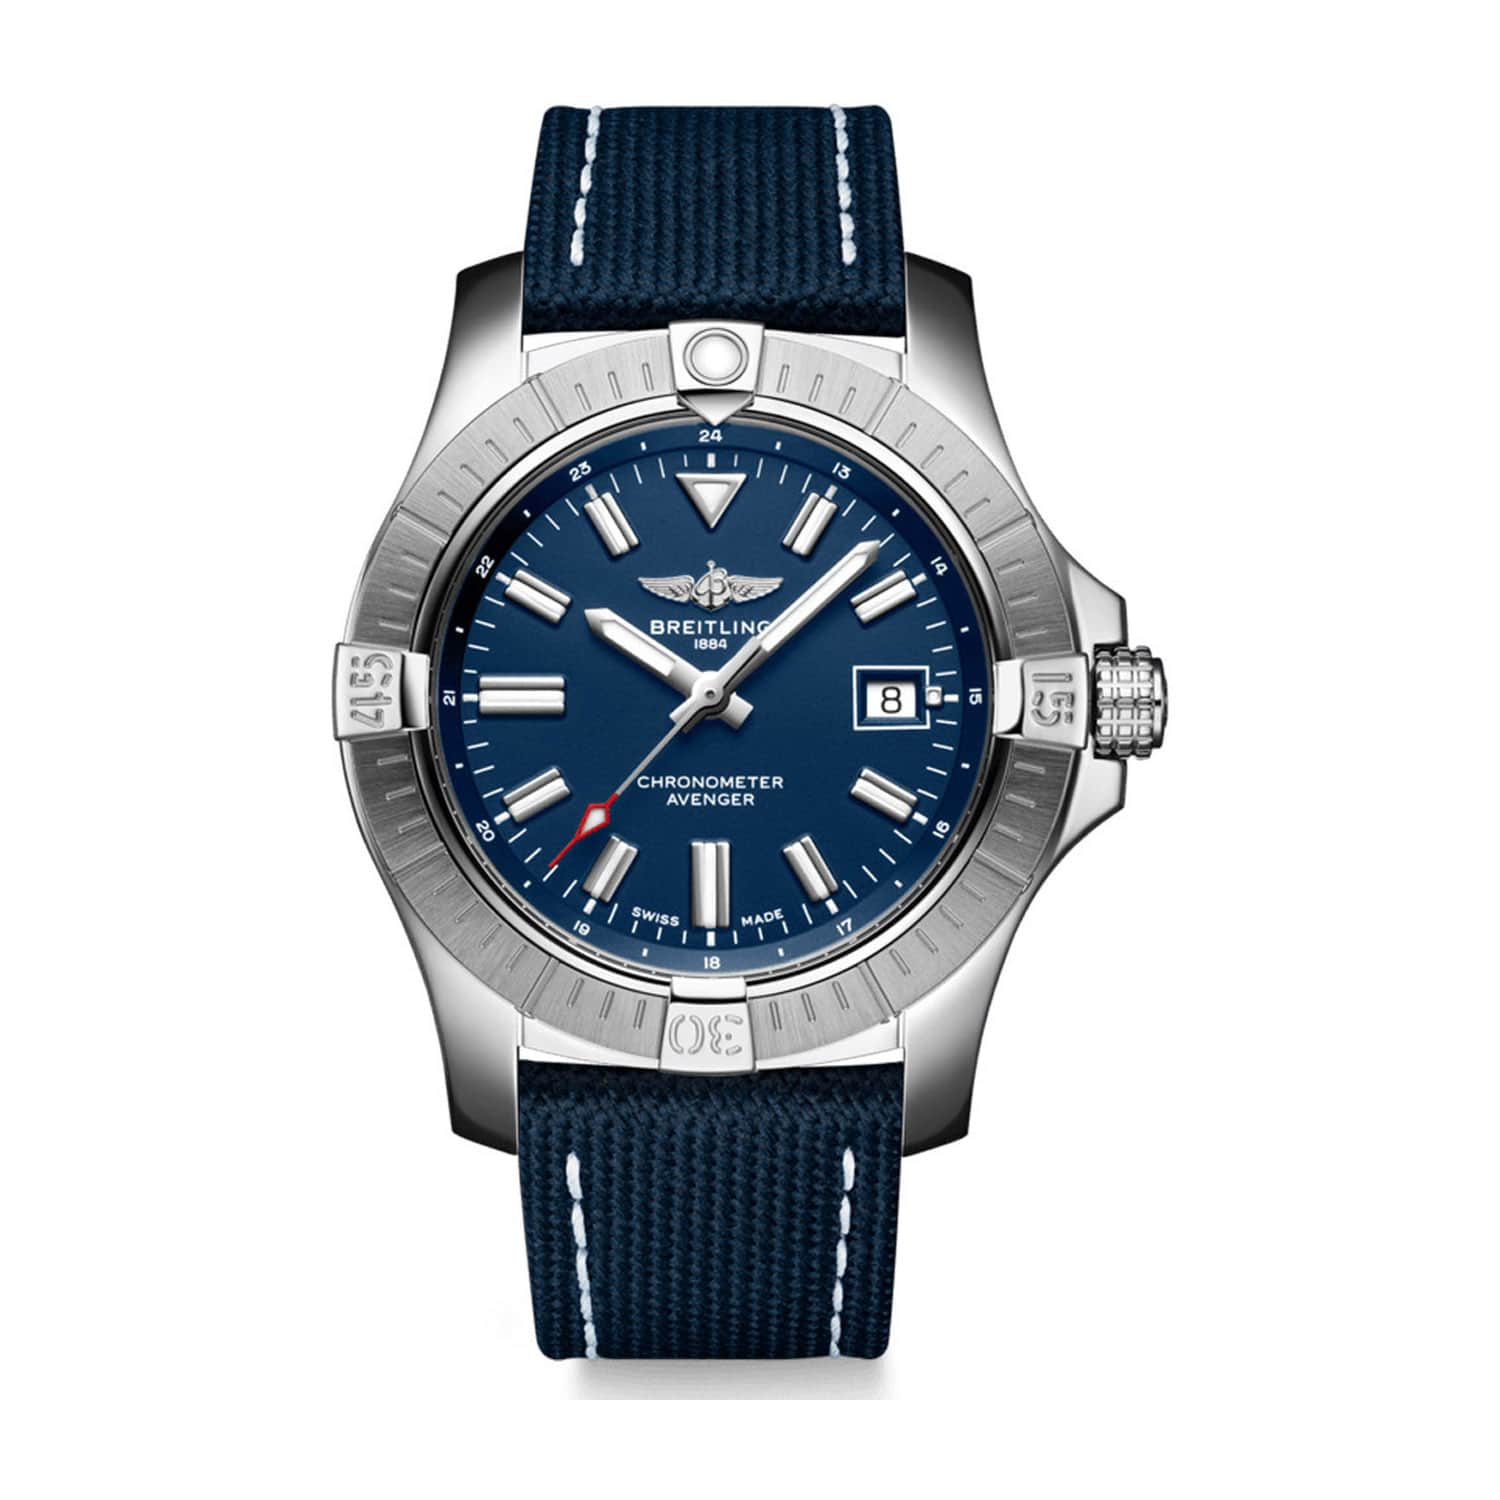 Breitling Avenger 43mm Blue Dial Steel Case Blue Strap Watch